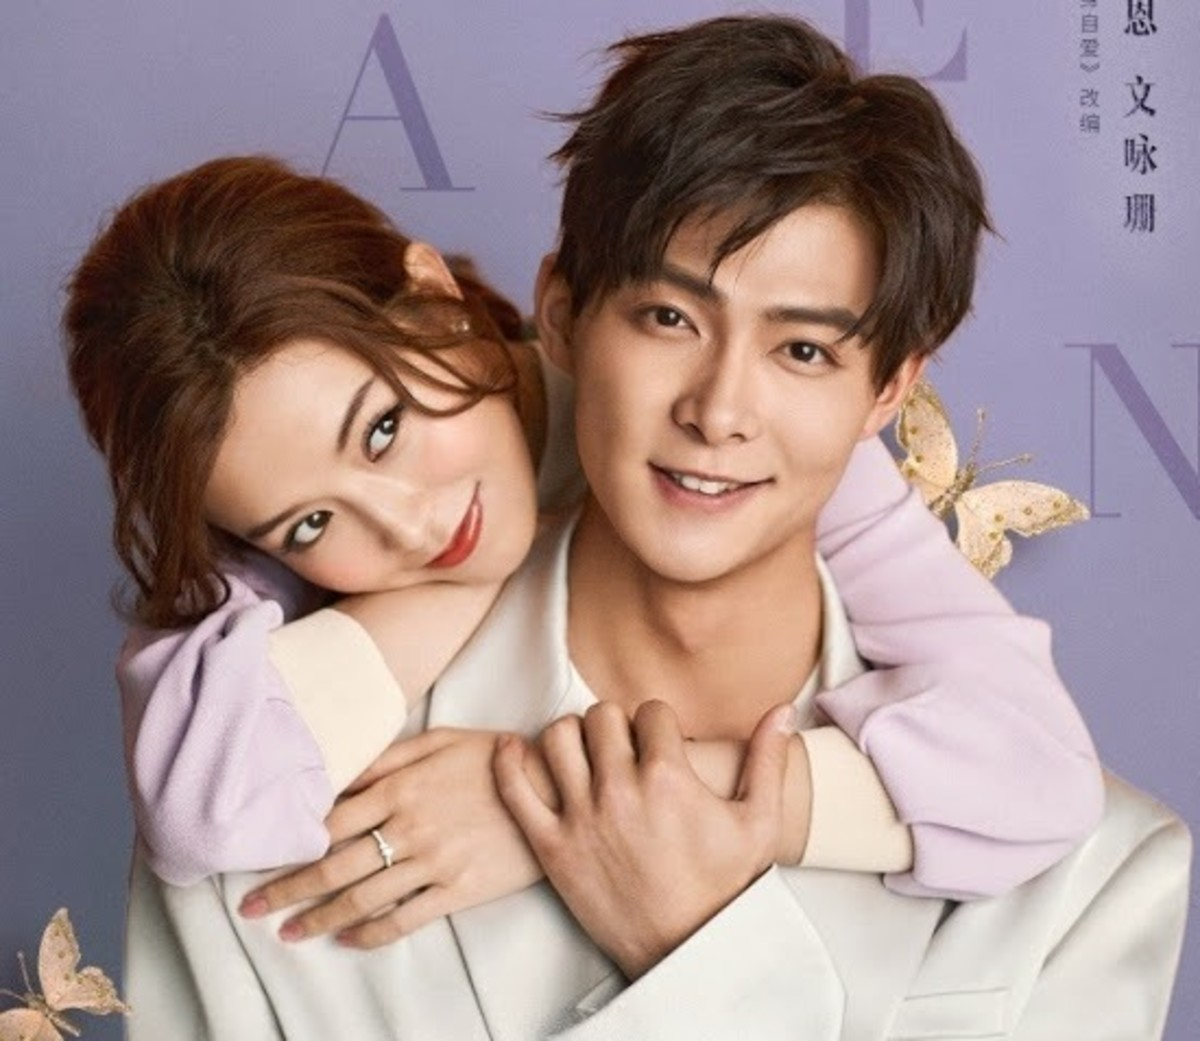 Nice To Meet You | The Top 11 Most Romantic Chinese Dramas